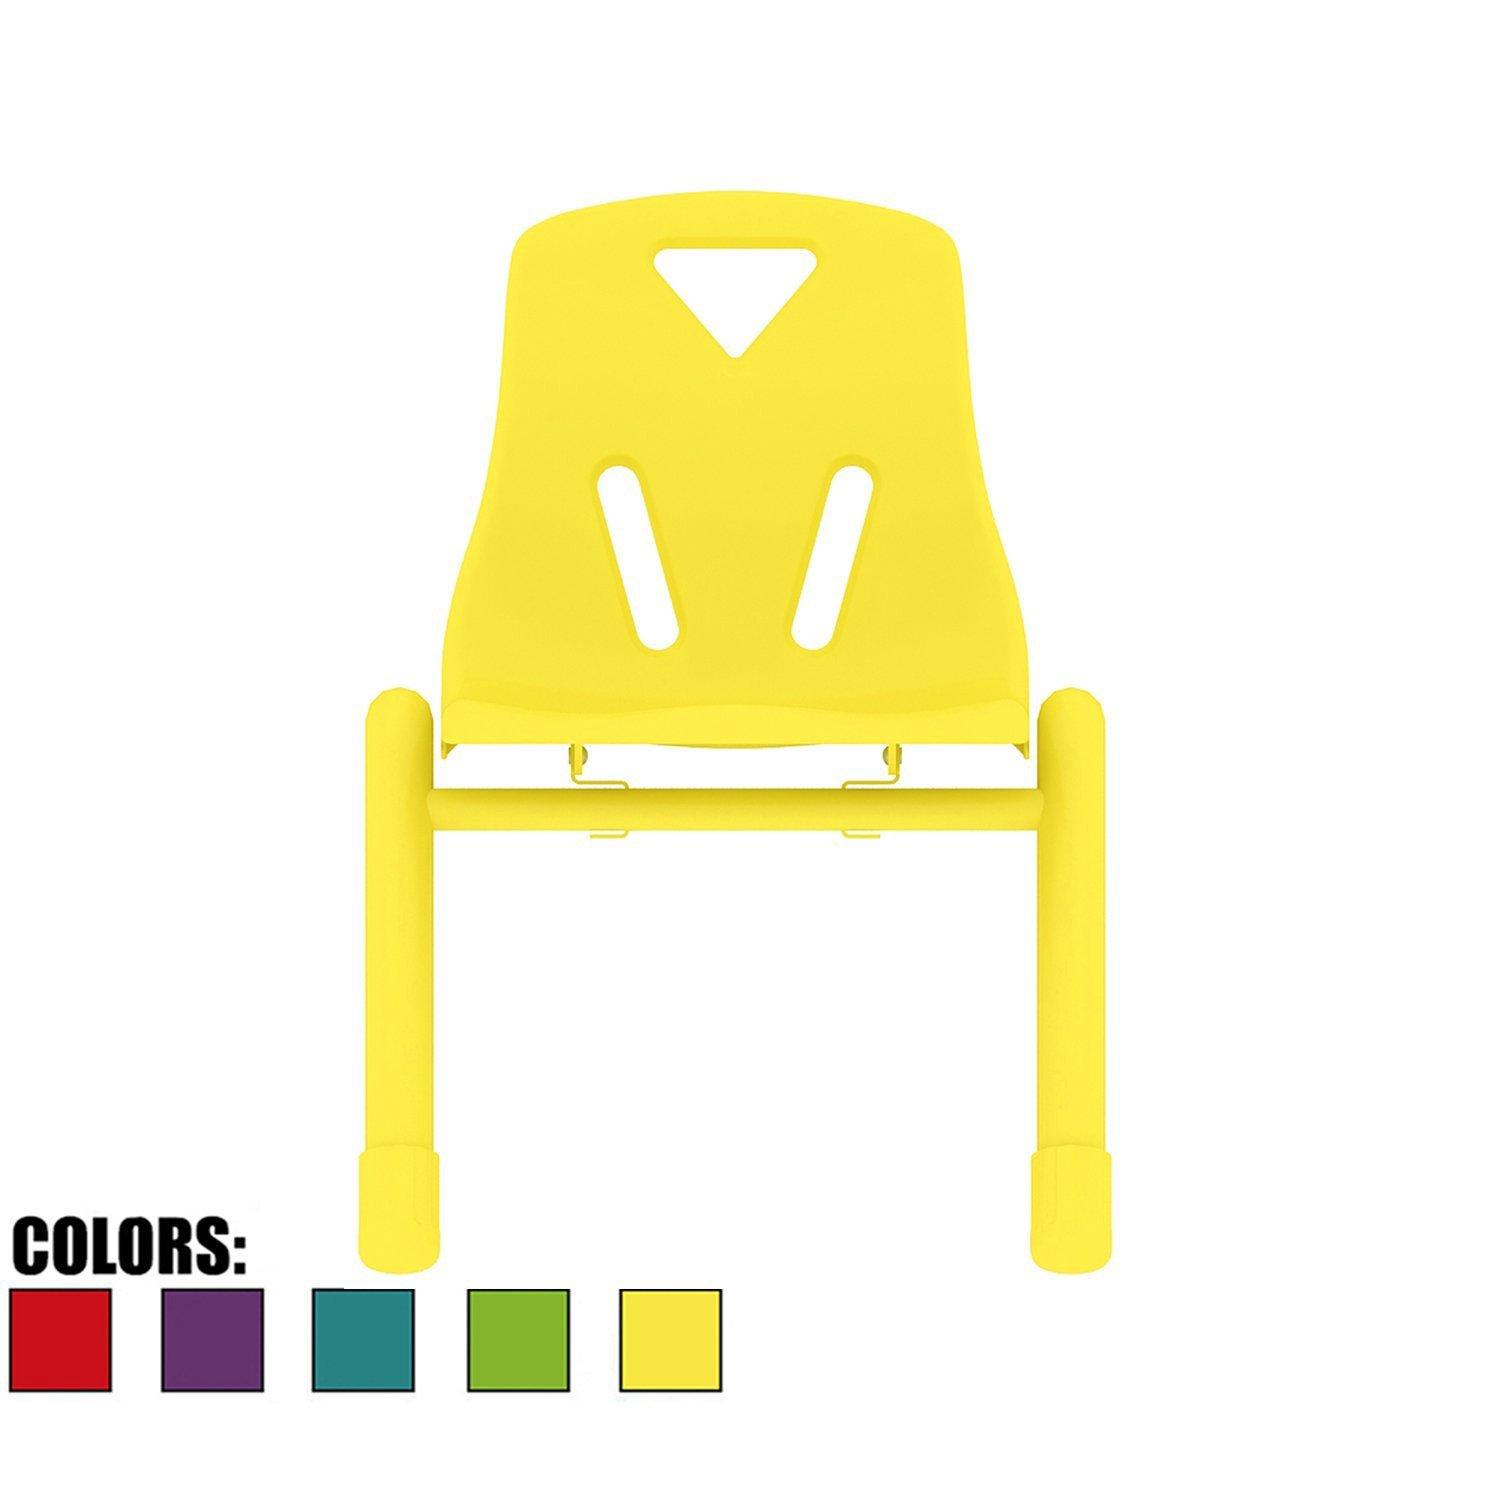 2xhome - Yellow - Kids Size Plastic Side Chair 12'' Seat Height Yellow Childs Chair Childrens Room School Chairs No Arm Arms Armless Molded Plastic Seat with Coated Metal Legs Stackable